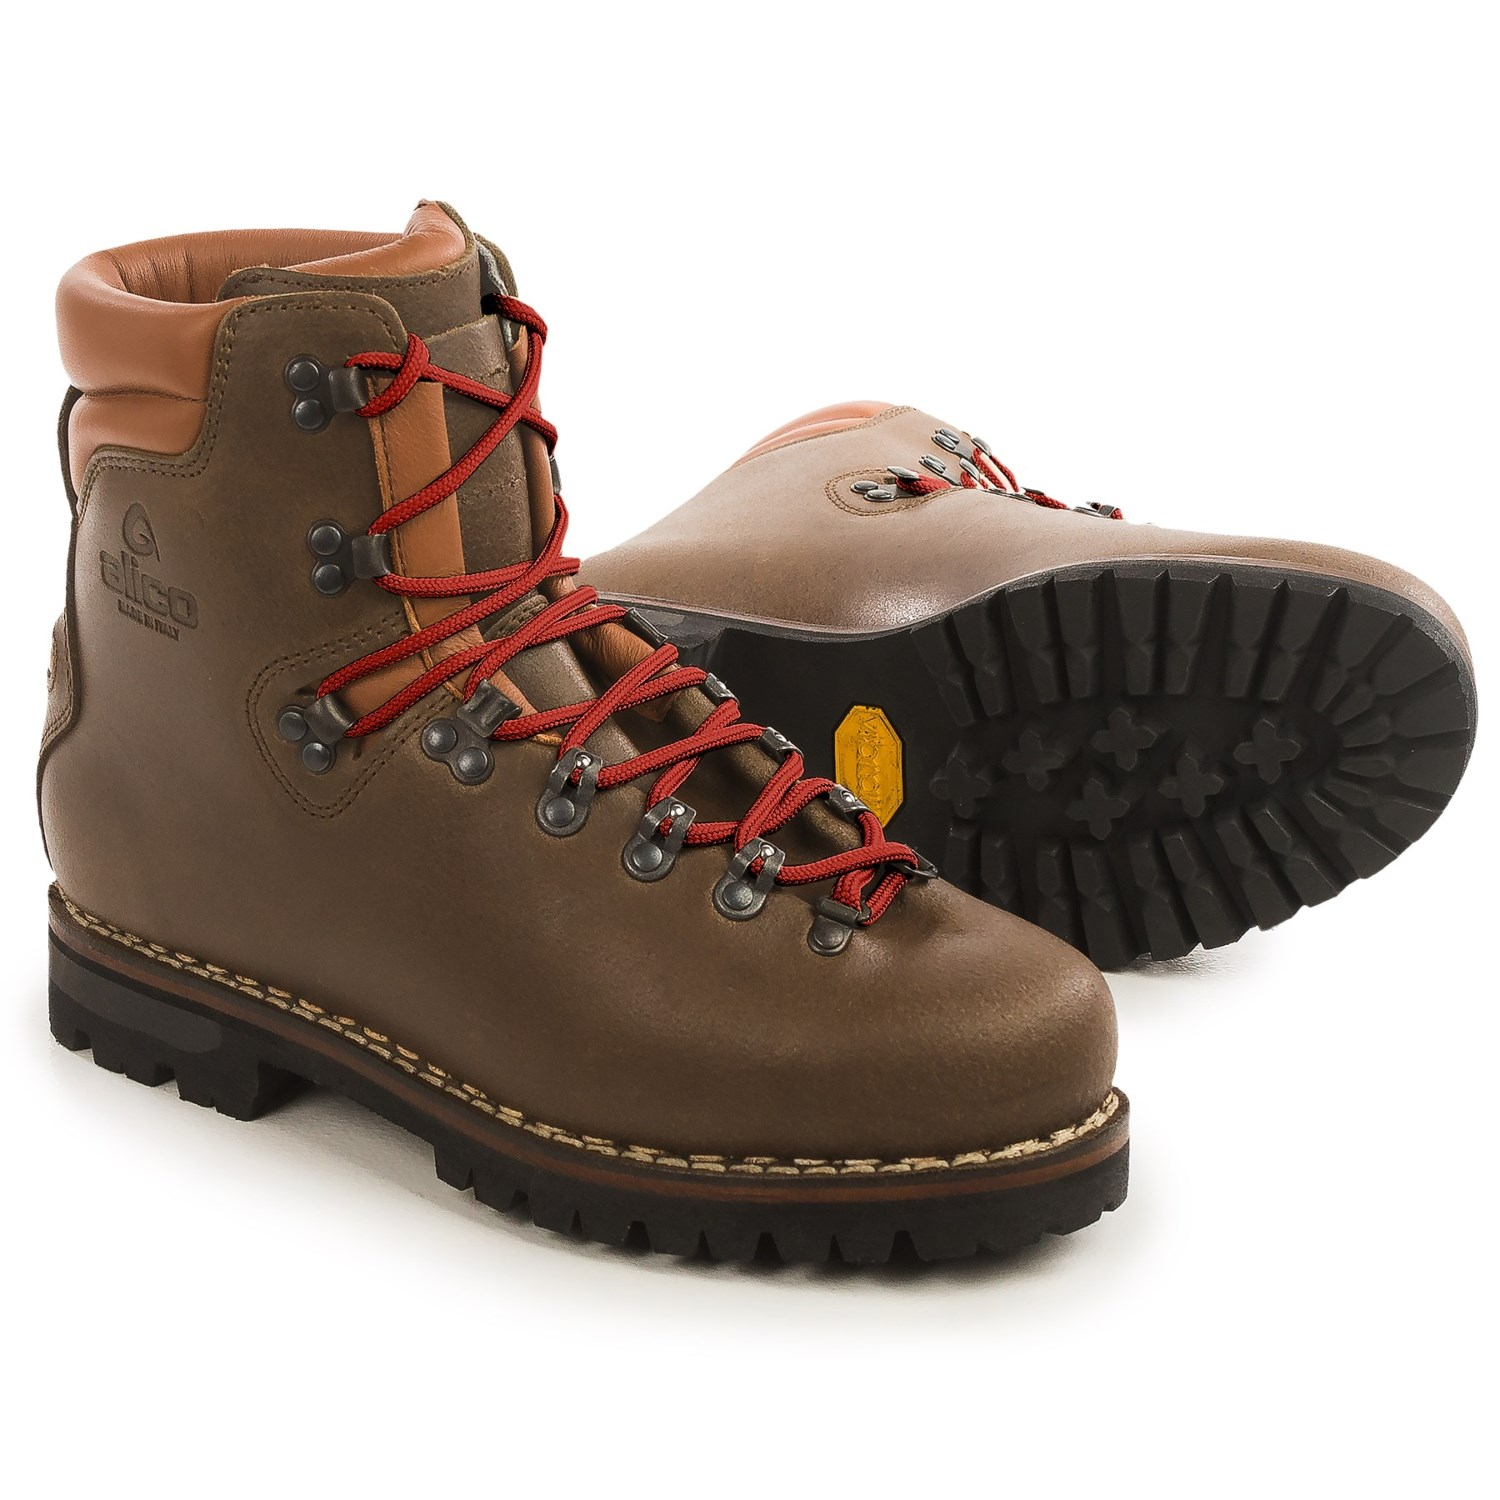 3af37a211b6f Alico Made in Italy New Guide Mountaineering Boots - Leather (For Men) in  Brown